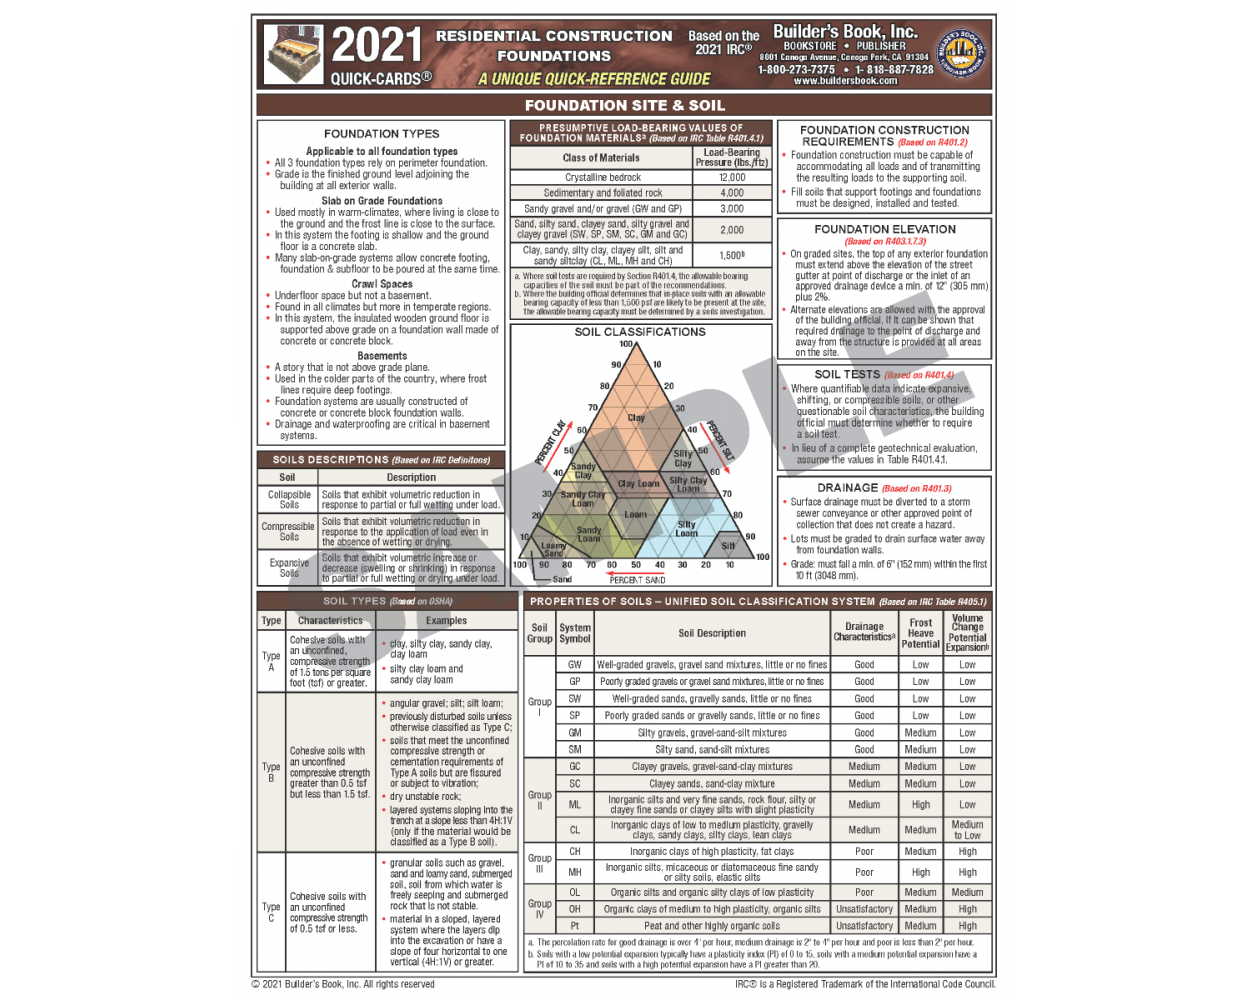 2021 Residential Foundations based on the IRC